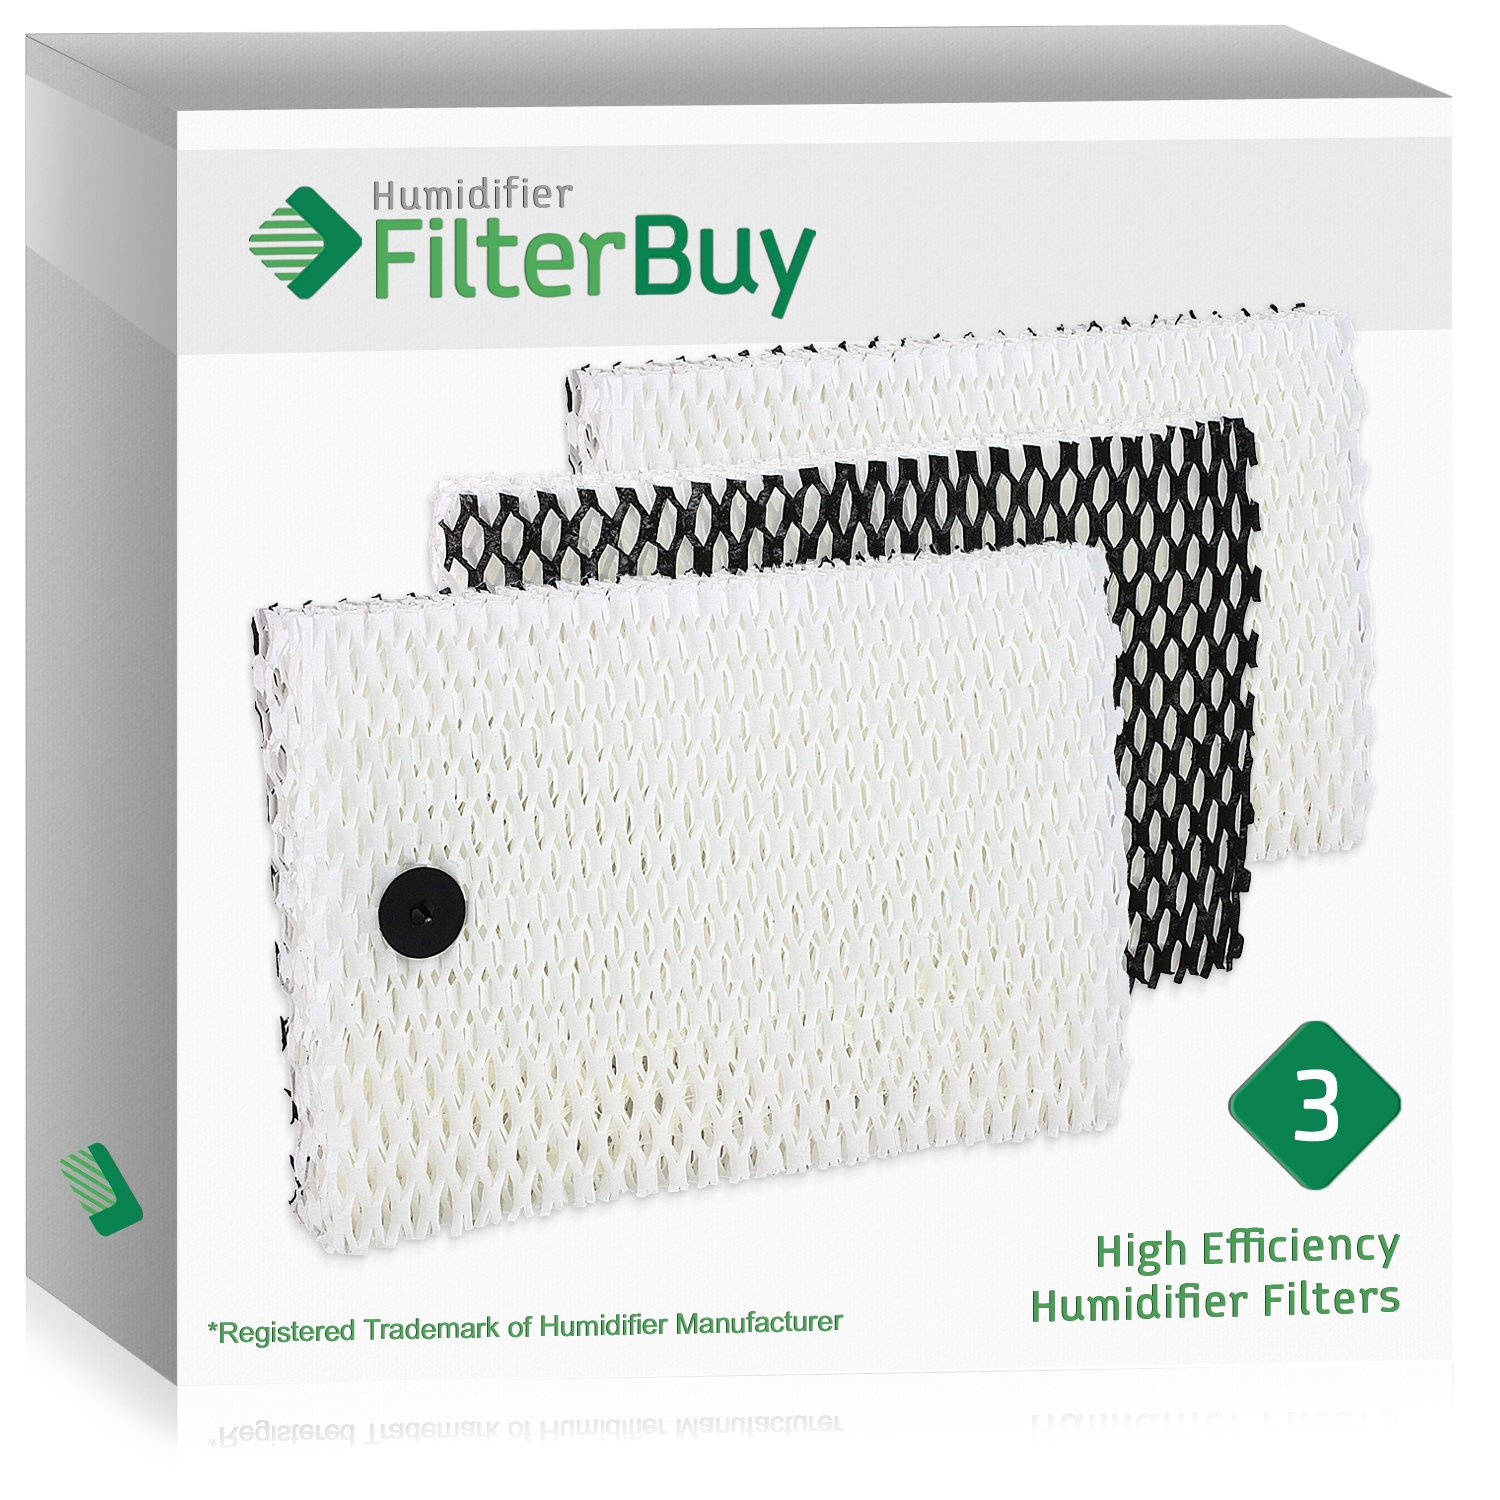 FilterBuy Holmes Type E HWF100, Bionaire BWF100 Humidifier Replacement Filters. Compatible to fit HM630, HM729G, HM7203, HM7203RV, HM7204, HM7808, HM7305, HM730RC & HM7405RC. Pack of 6.